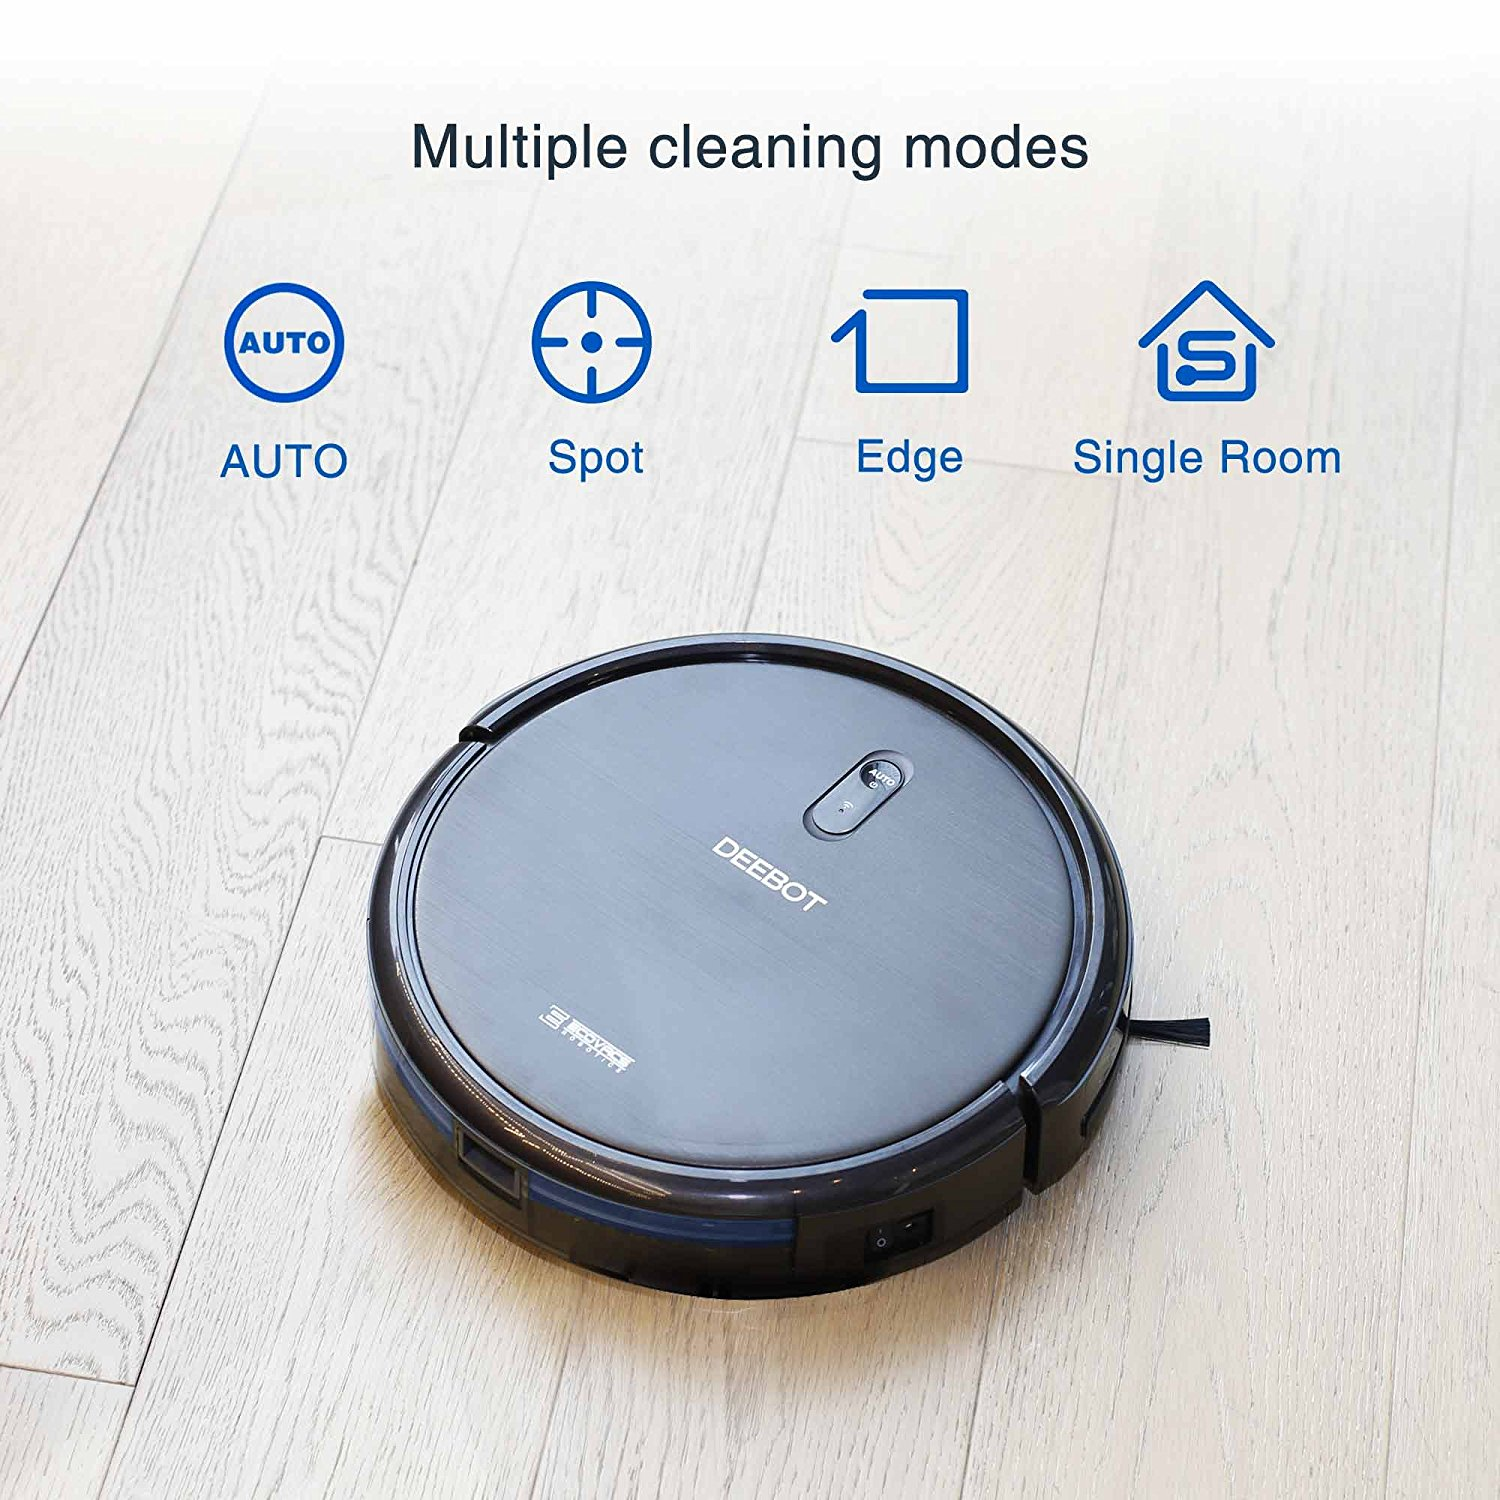 ECOVACS DeeBot N79, Cleaning Modes, Vacuum Fanatics, Reviews and Comparisons of Robotic Cleaners